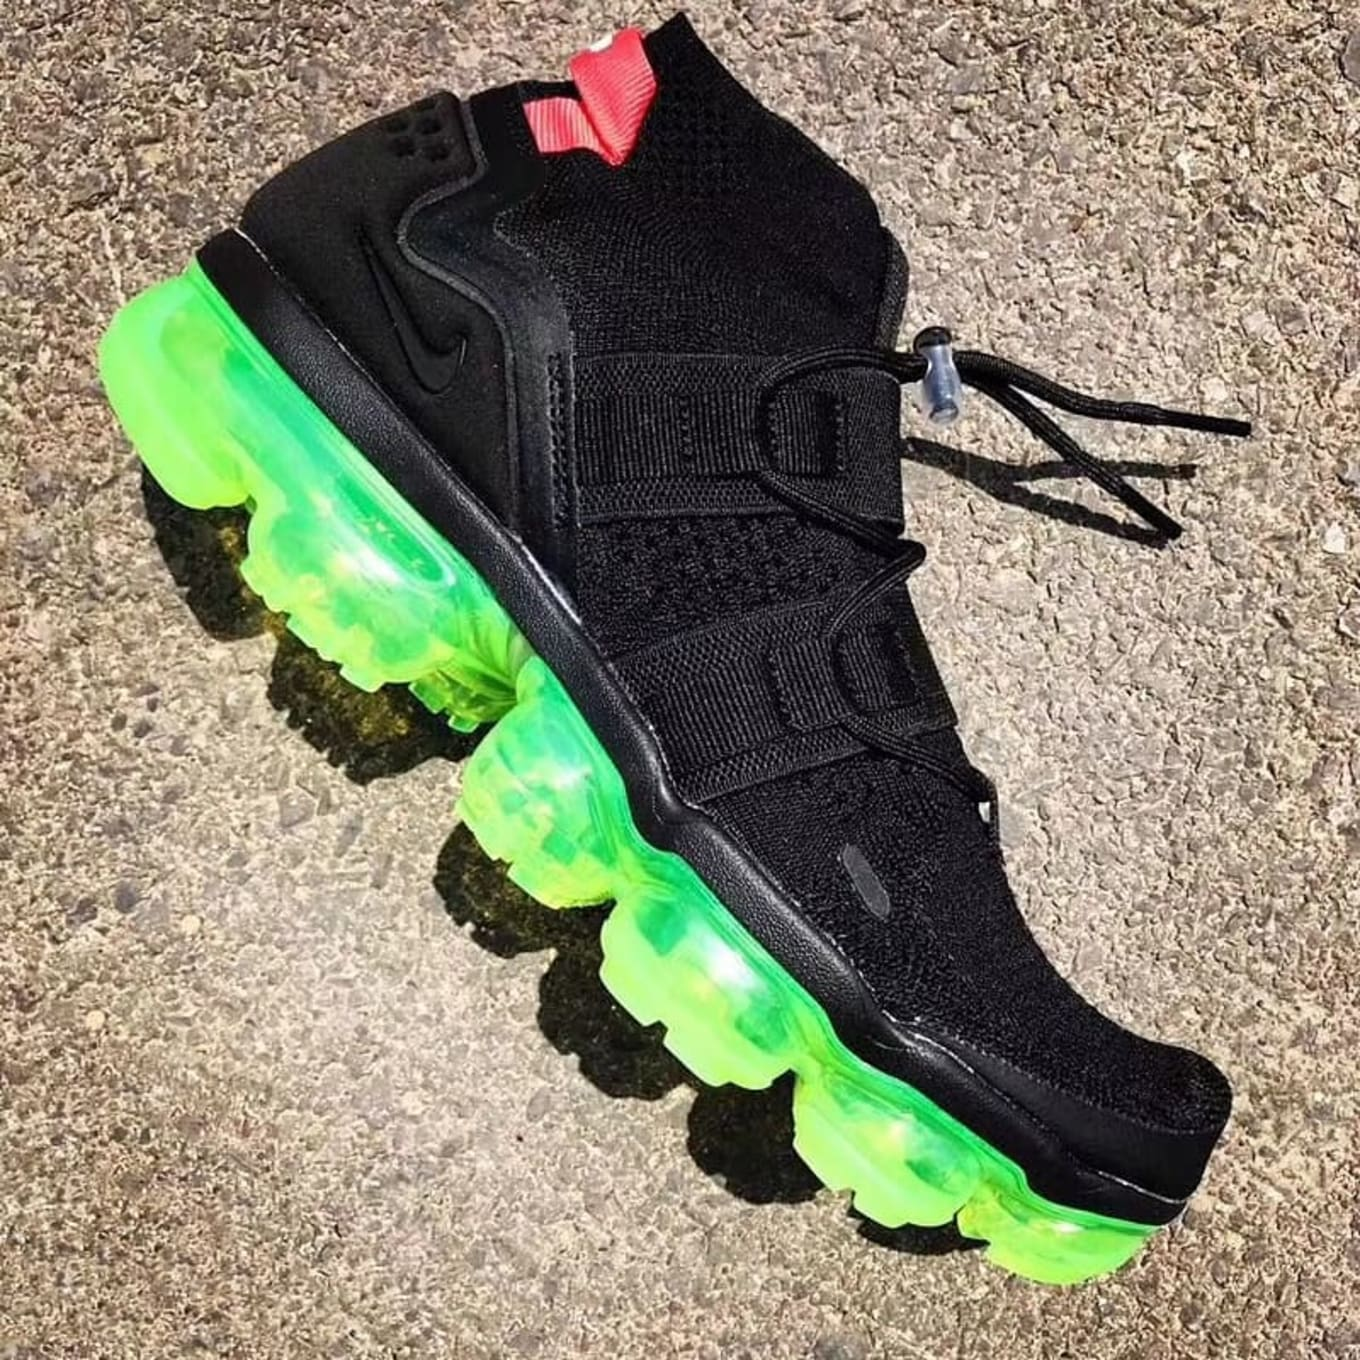 452c10b396c47 Black and Volt Team Up on Upcoming Nike Air VaporMax Utility